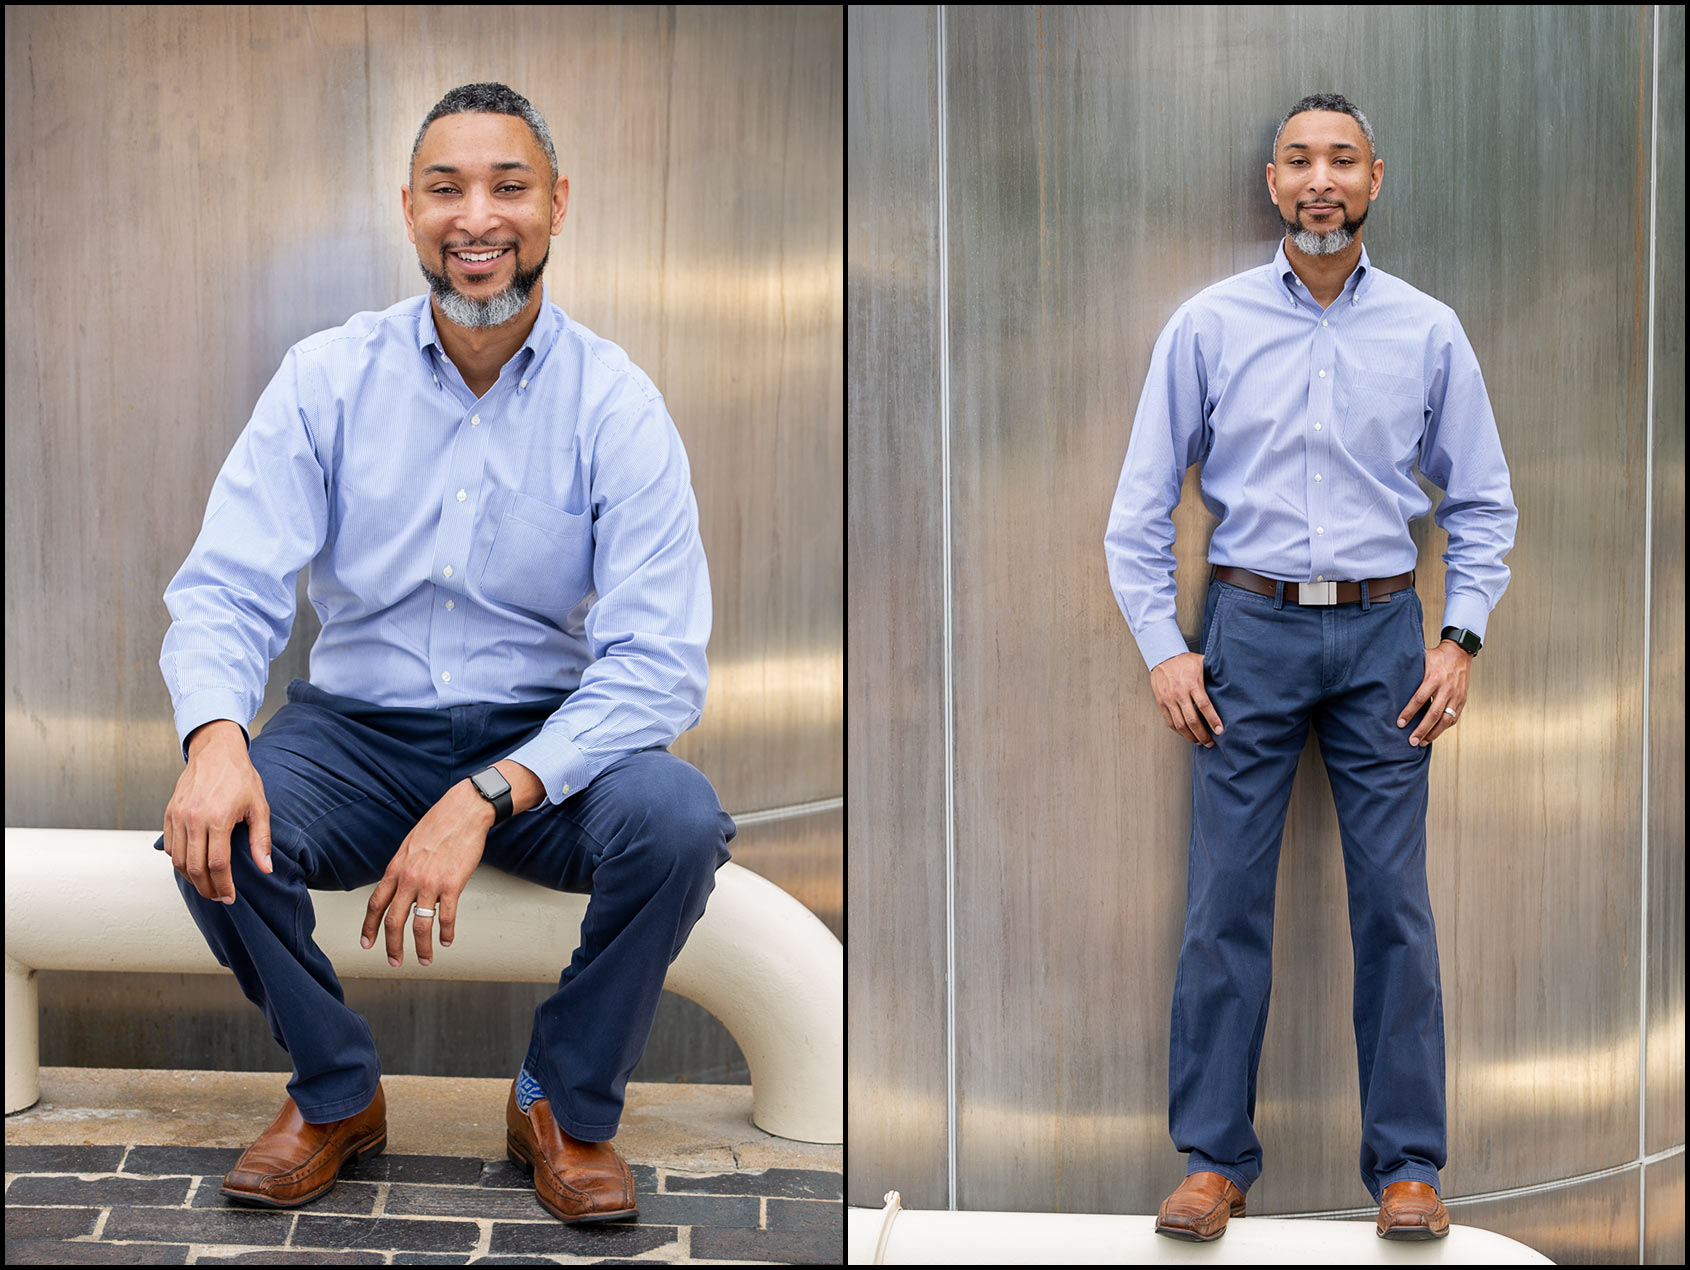 Portraits of an African-American entrepreneur and CEO in front of a brushed metal sculpture in Houston, Texas.